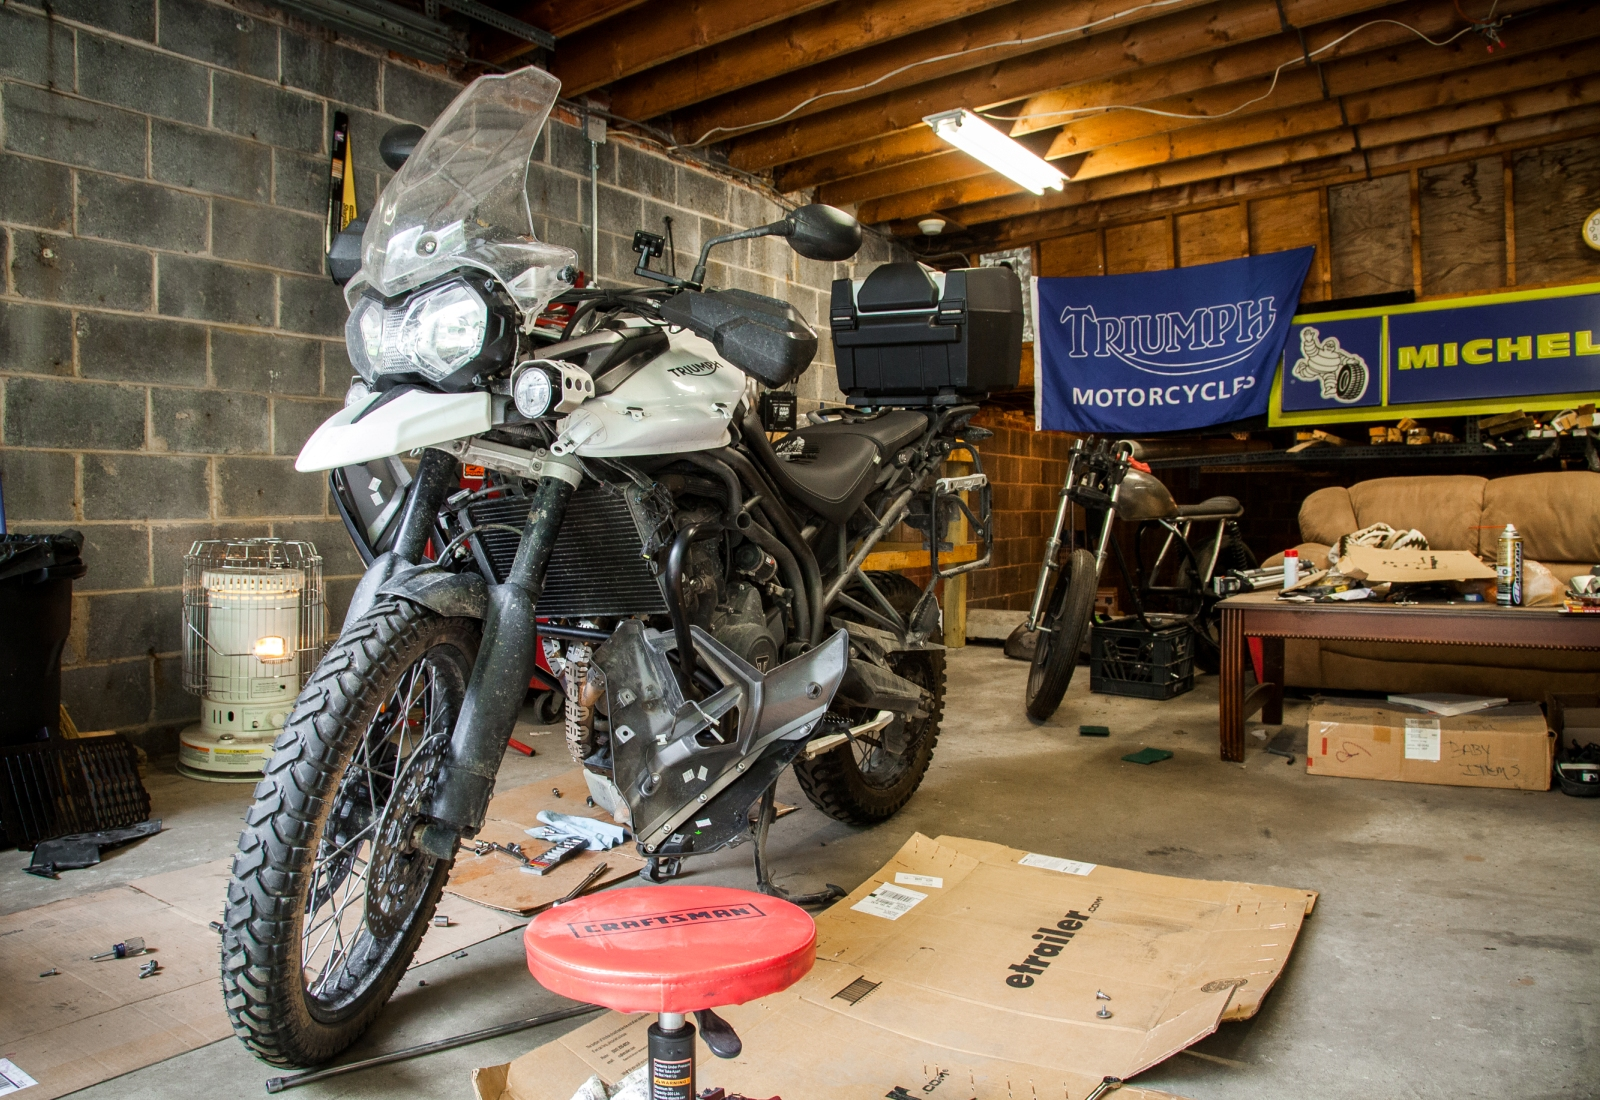 Garage follies: Confessions of repairs gone awry - RevZilla